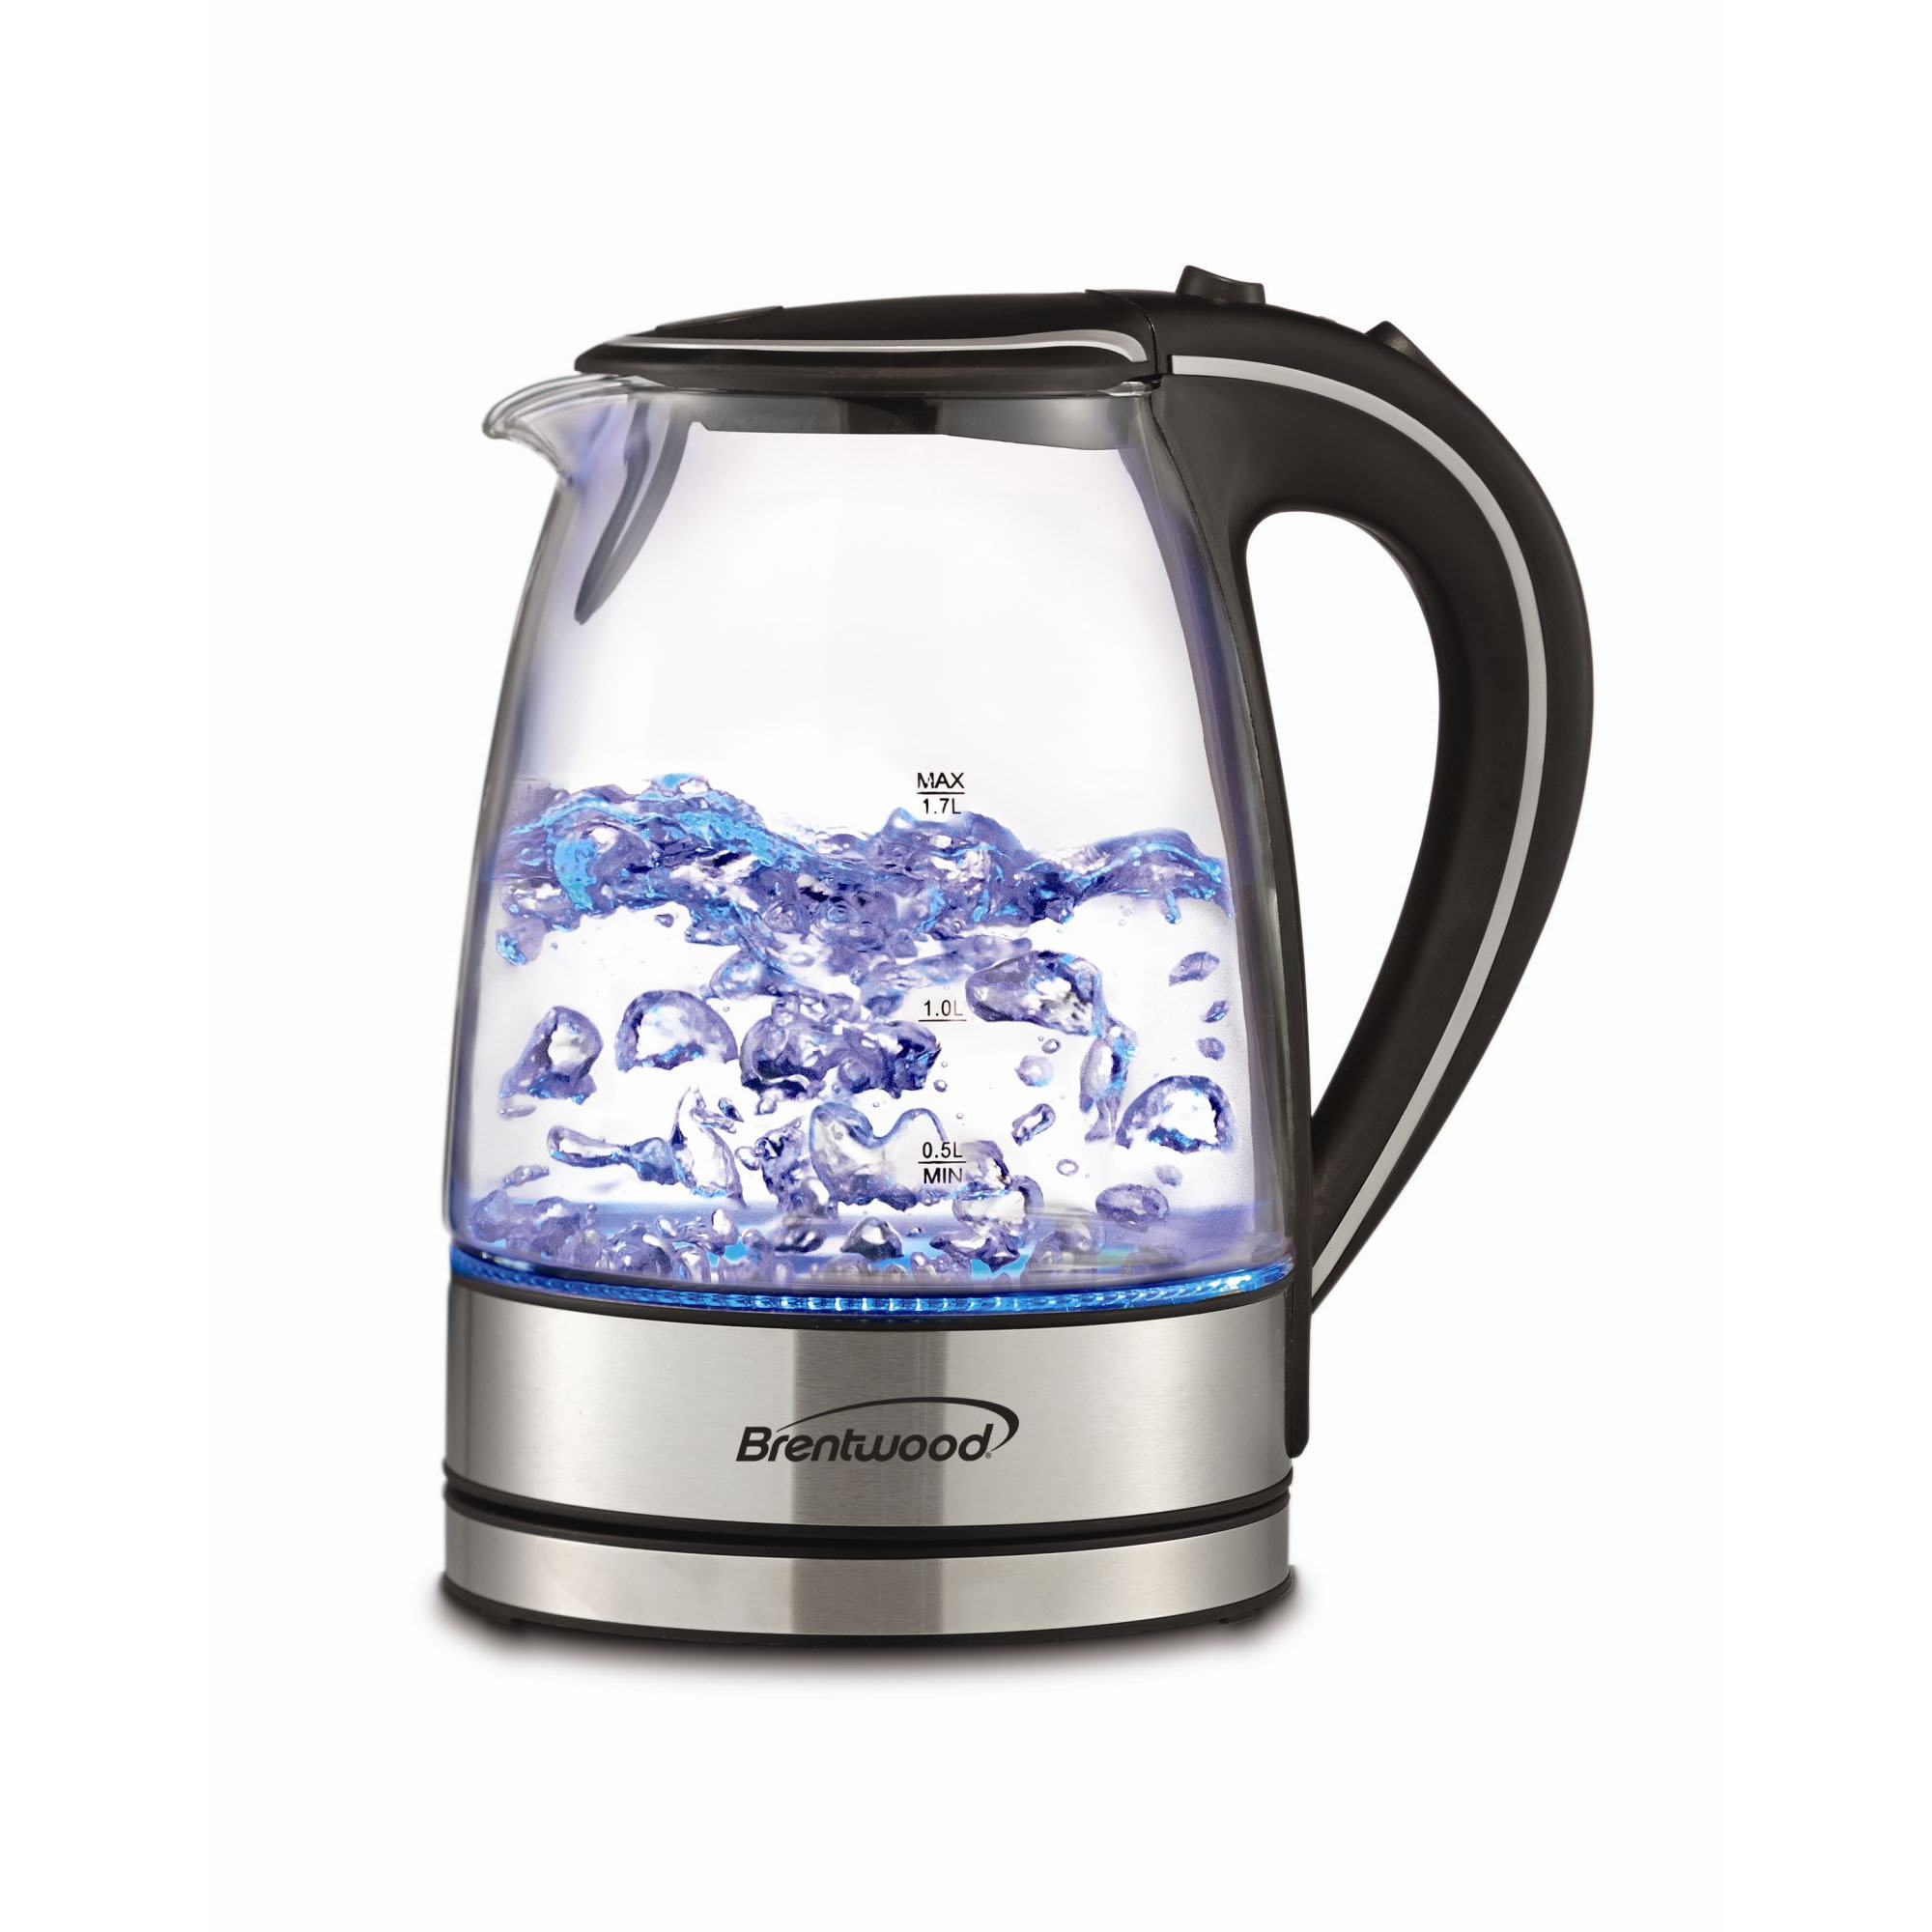 Brentwood 1.7L Tempered Glass Tea Kettle - Black